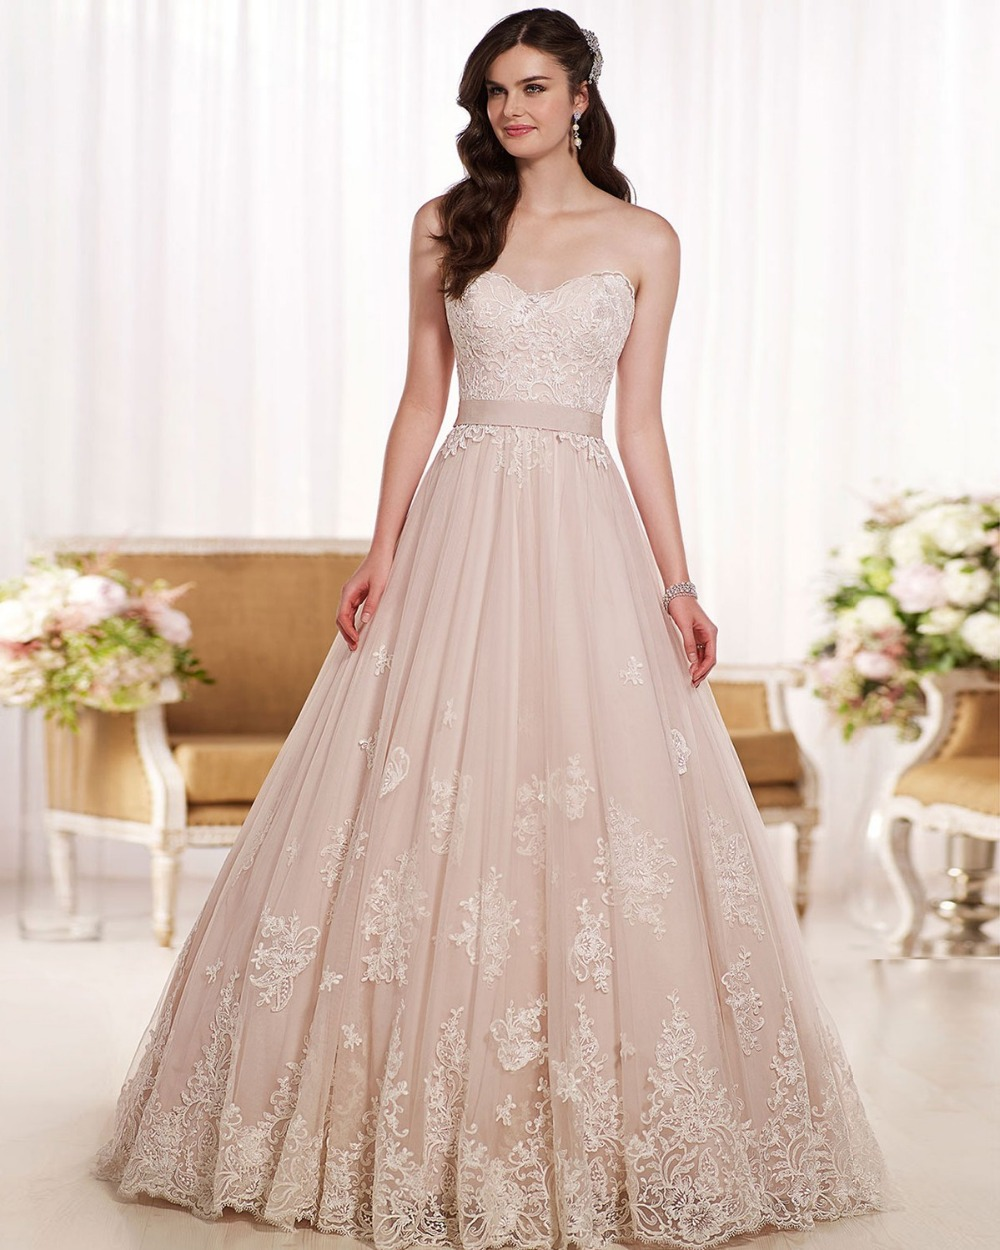 Elegant Sweetheart Lace Wedding Dresses New Design